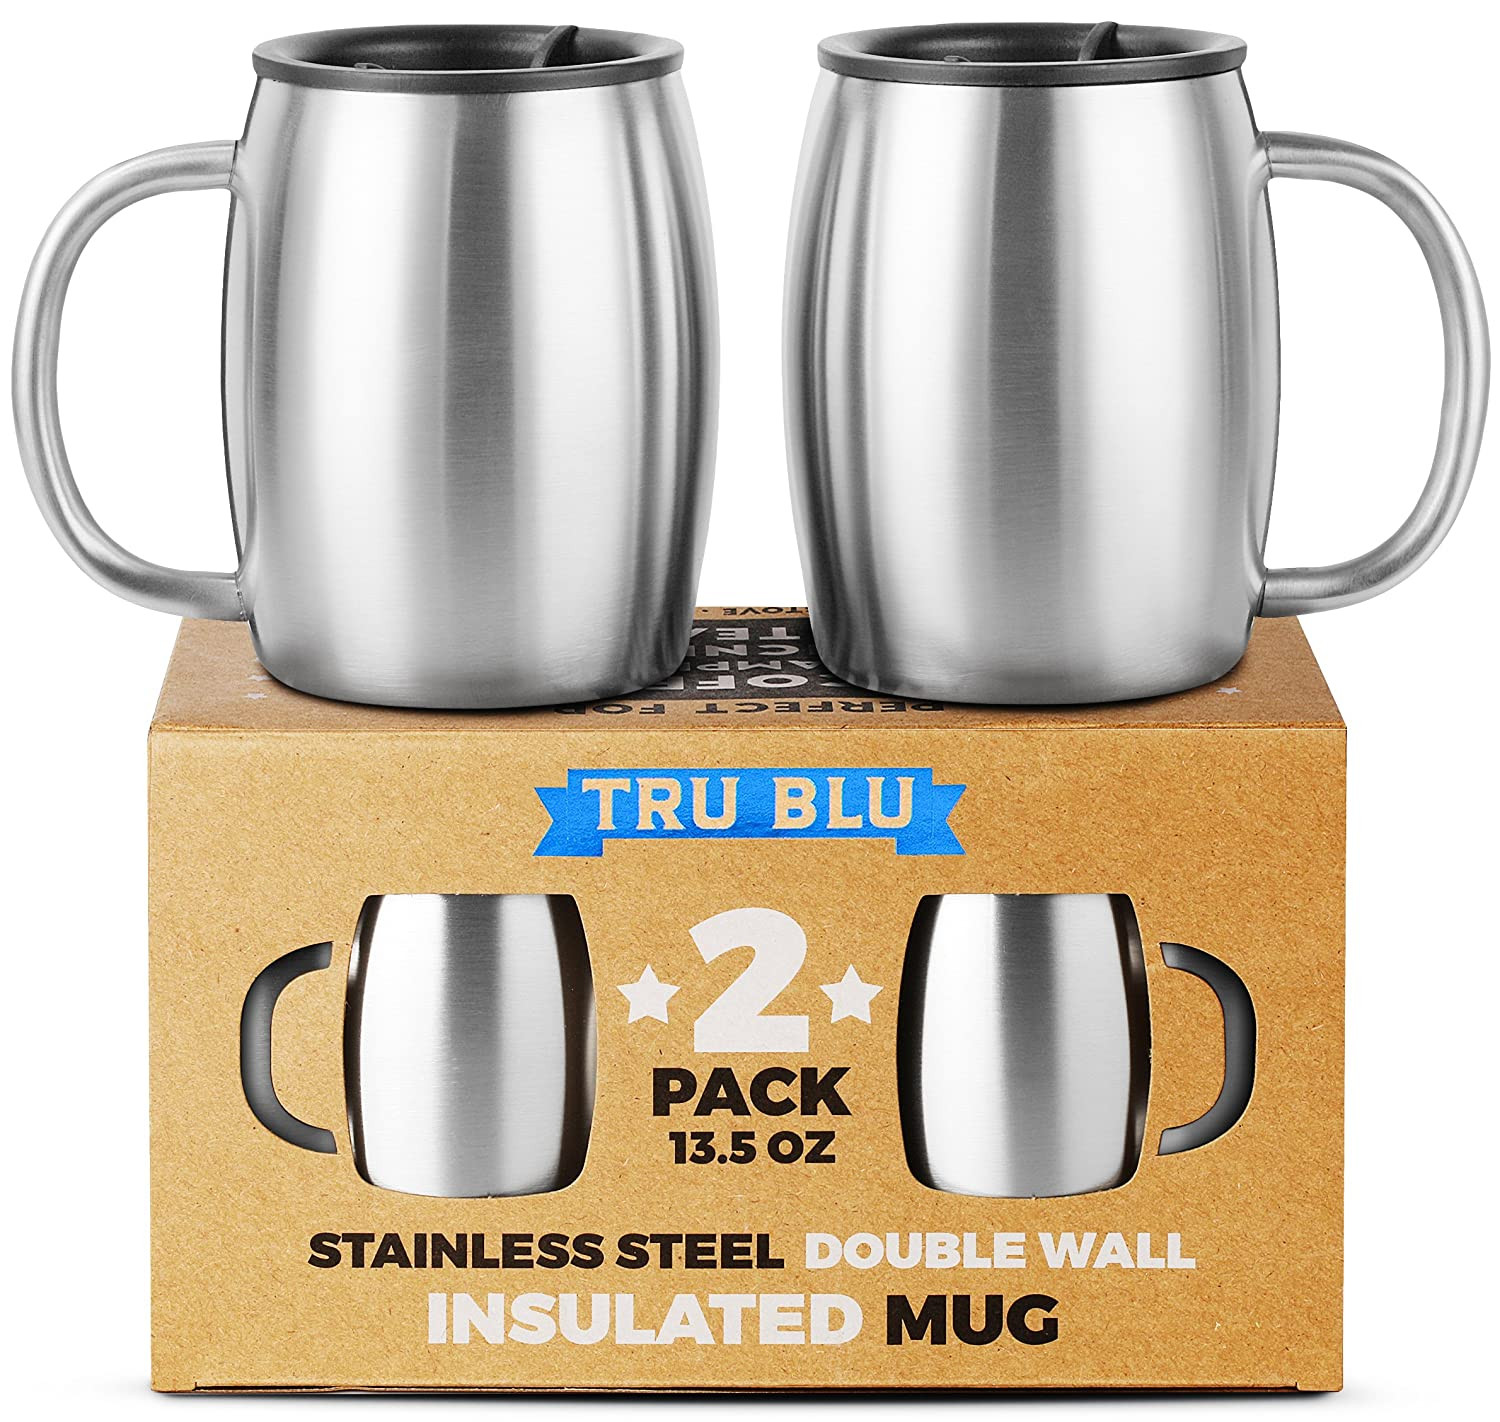 Stainless Steel Coffee Mug with Lid, Set of 2 - Premium Double Wall Insulated Travel Mugs - Shatterproof, BPA Free Spill Resistant Lids, Dishwasher Safe (Steel, 13.5oz) Tru Blu Steel